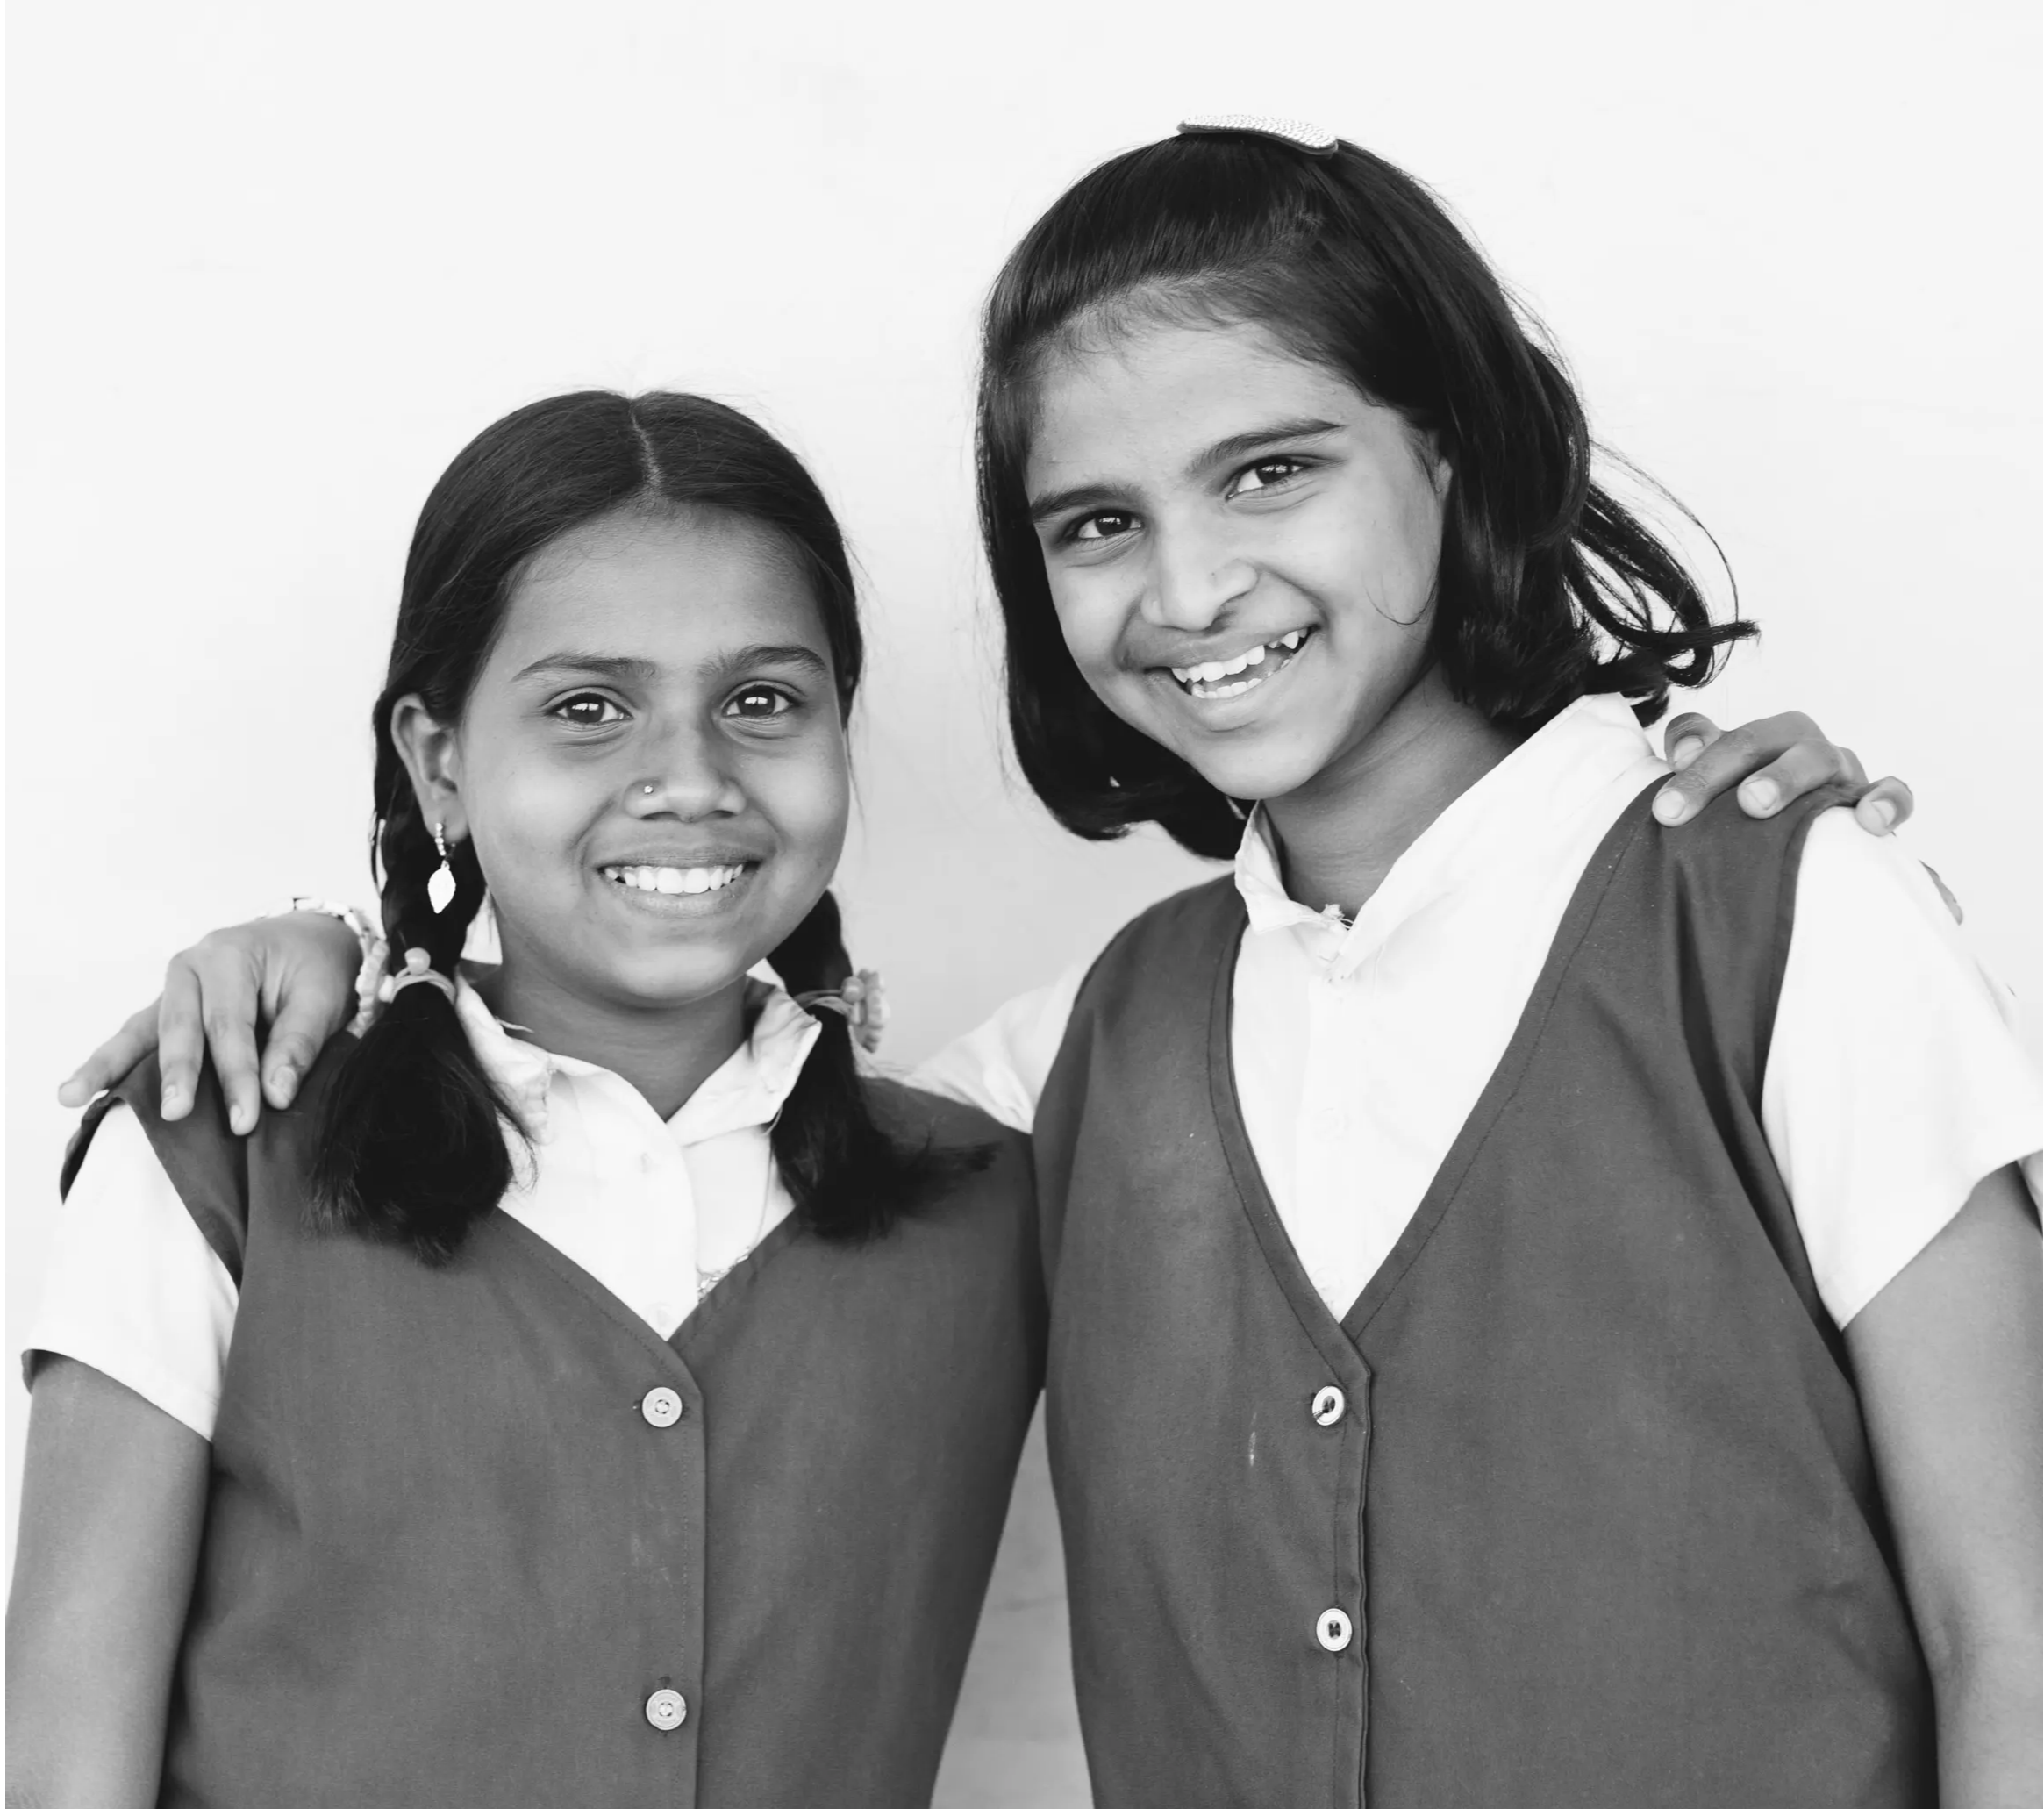 Two schoolgirls smiling at the camera.